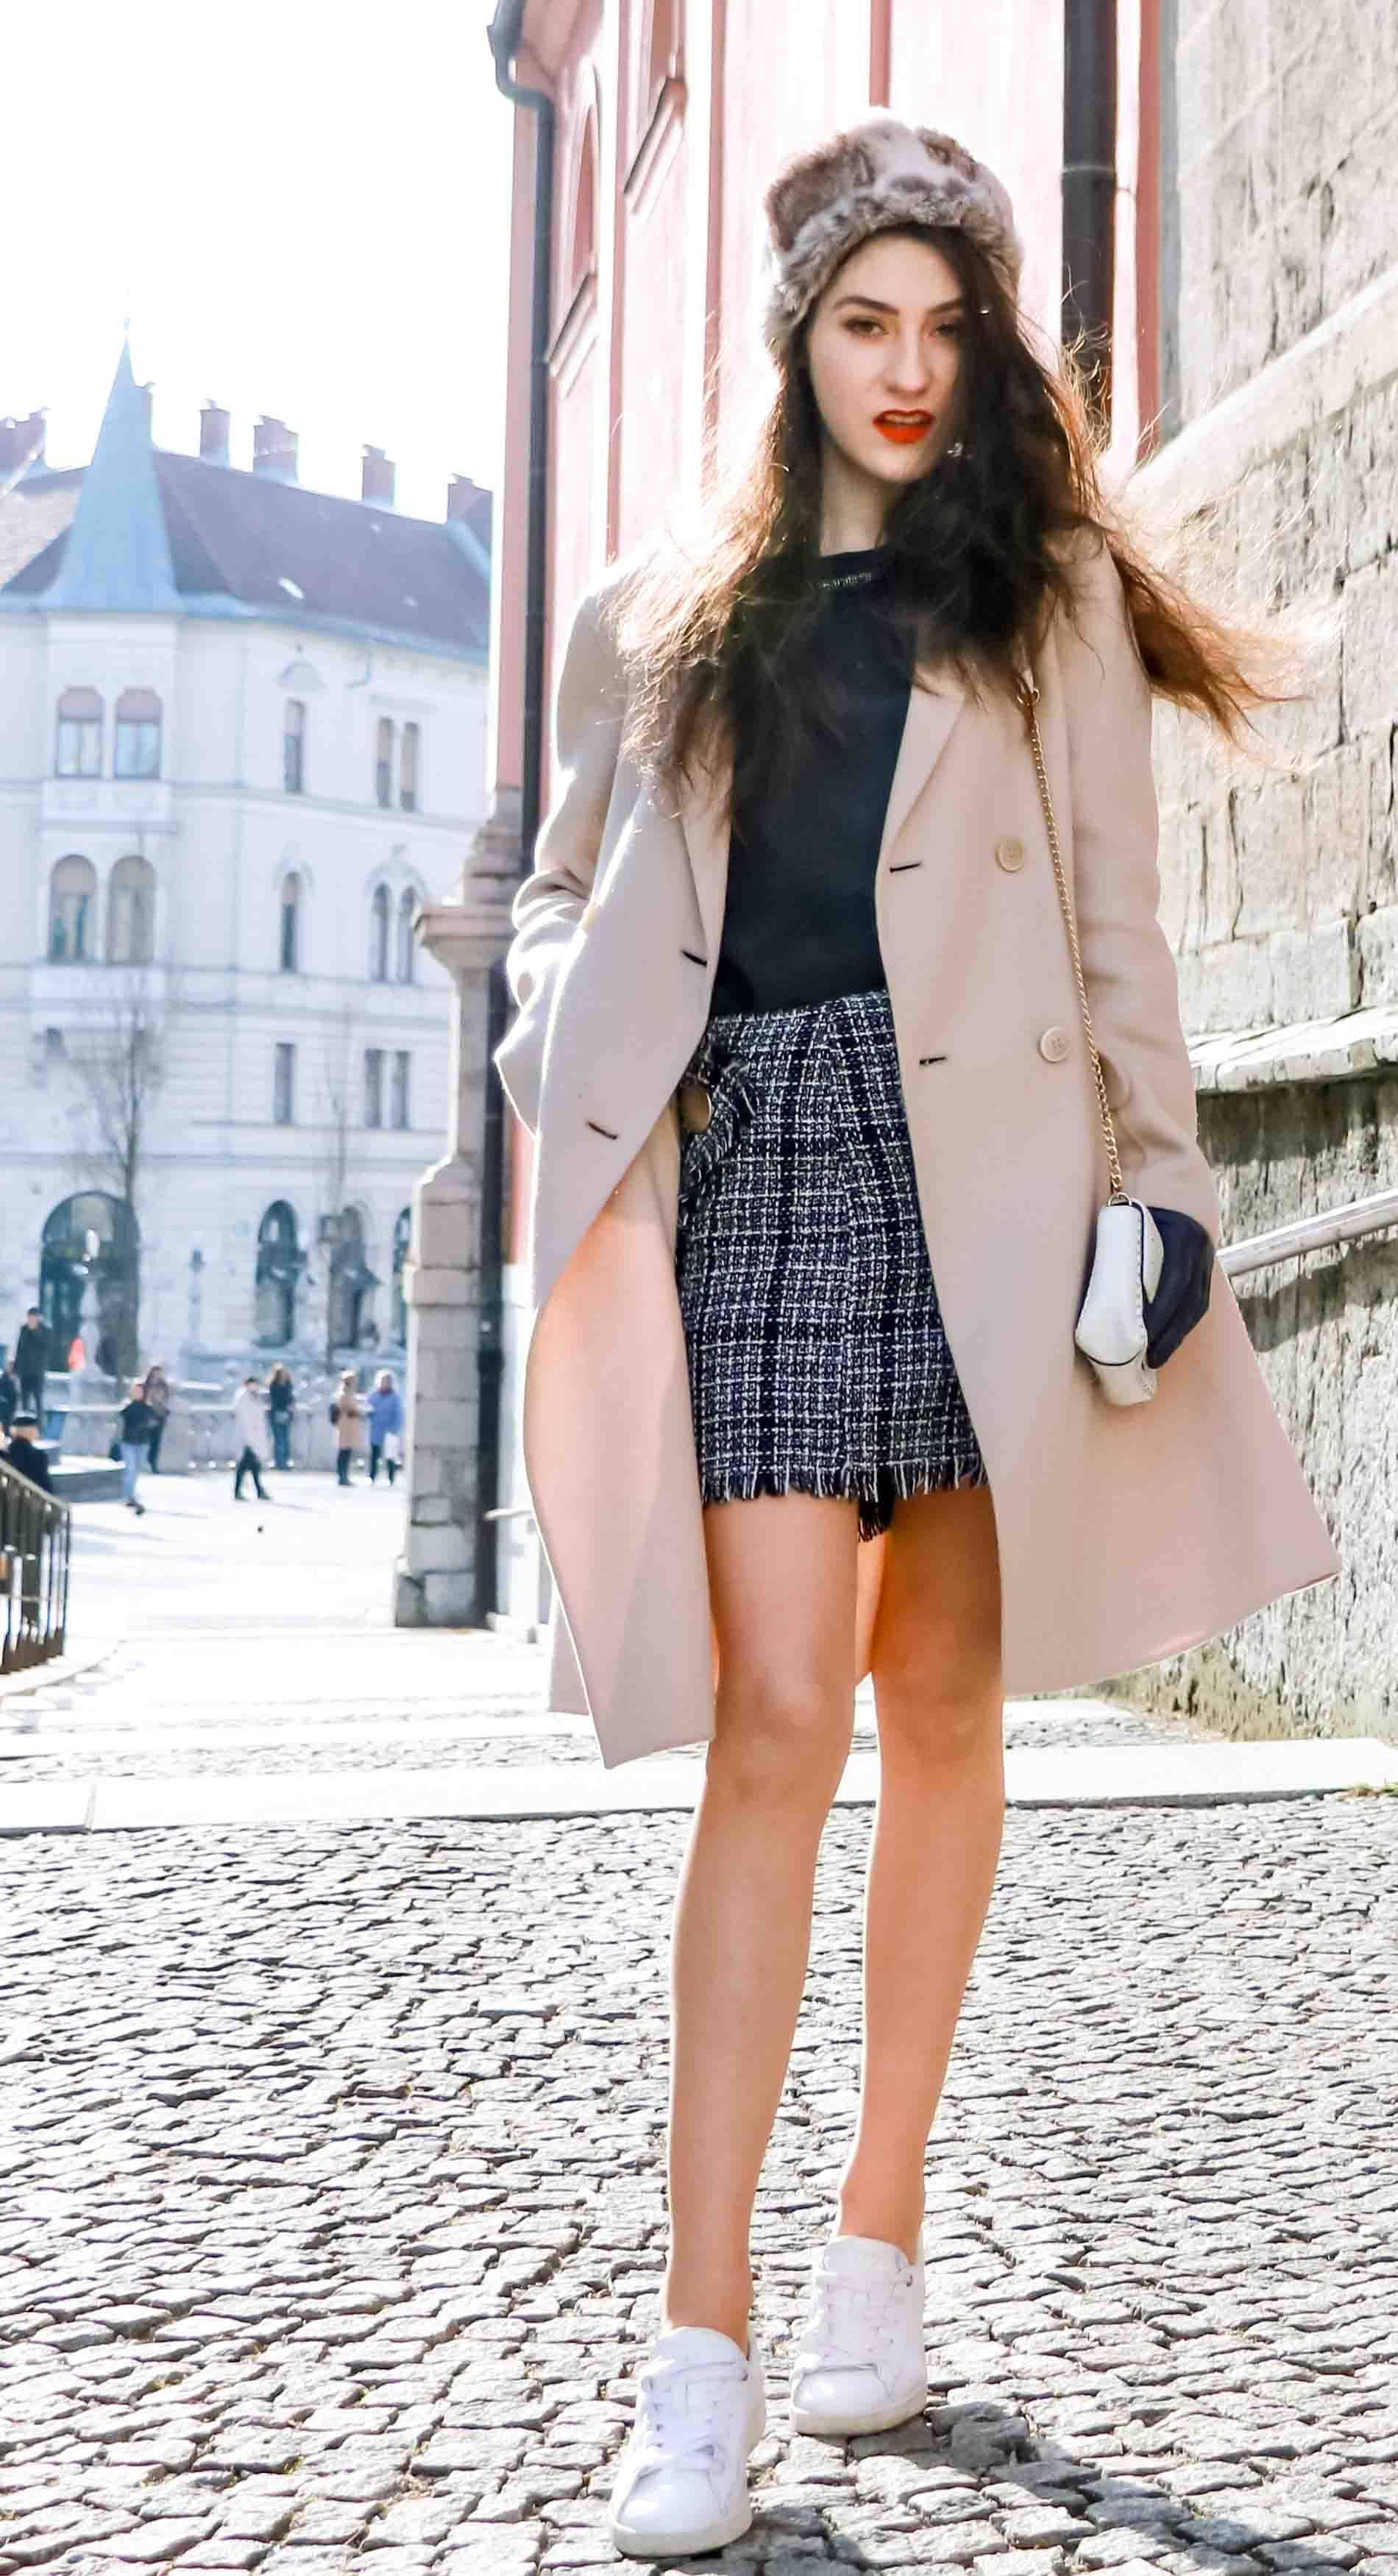 b2b6bee4c Fashion Blogger Veronika Lipar of Brunette from Wall Street dressed in  white sneakers from Diesel, black and white plaid tweed mini skirt from  Storets, ...